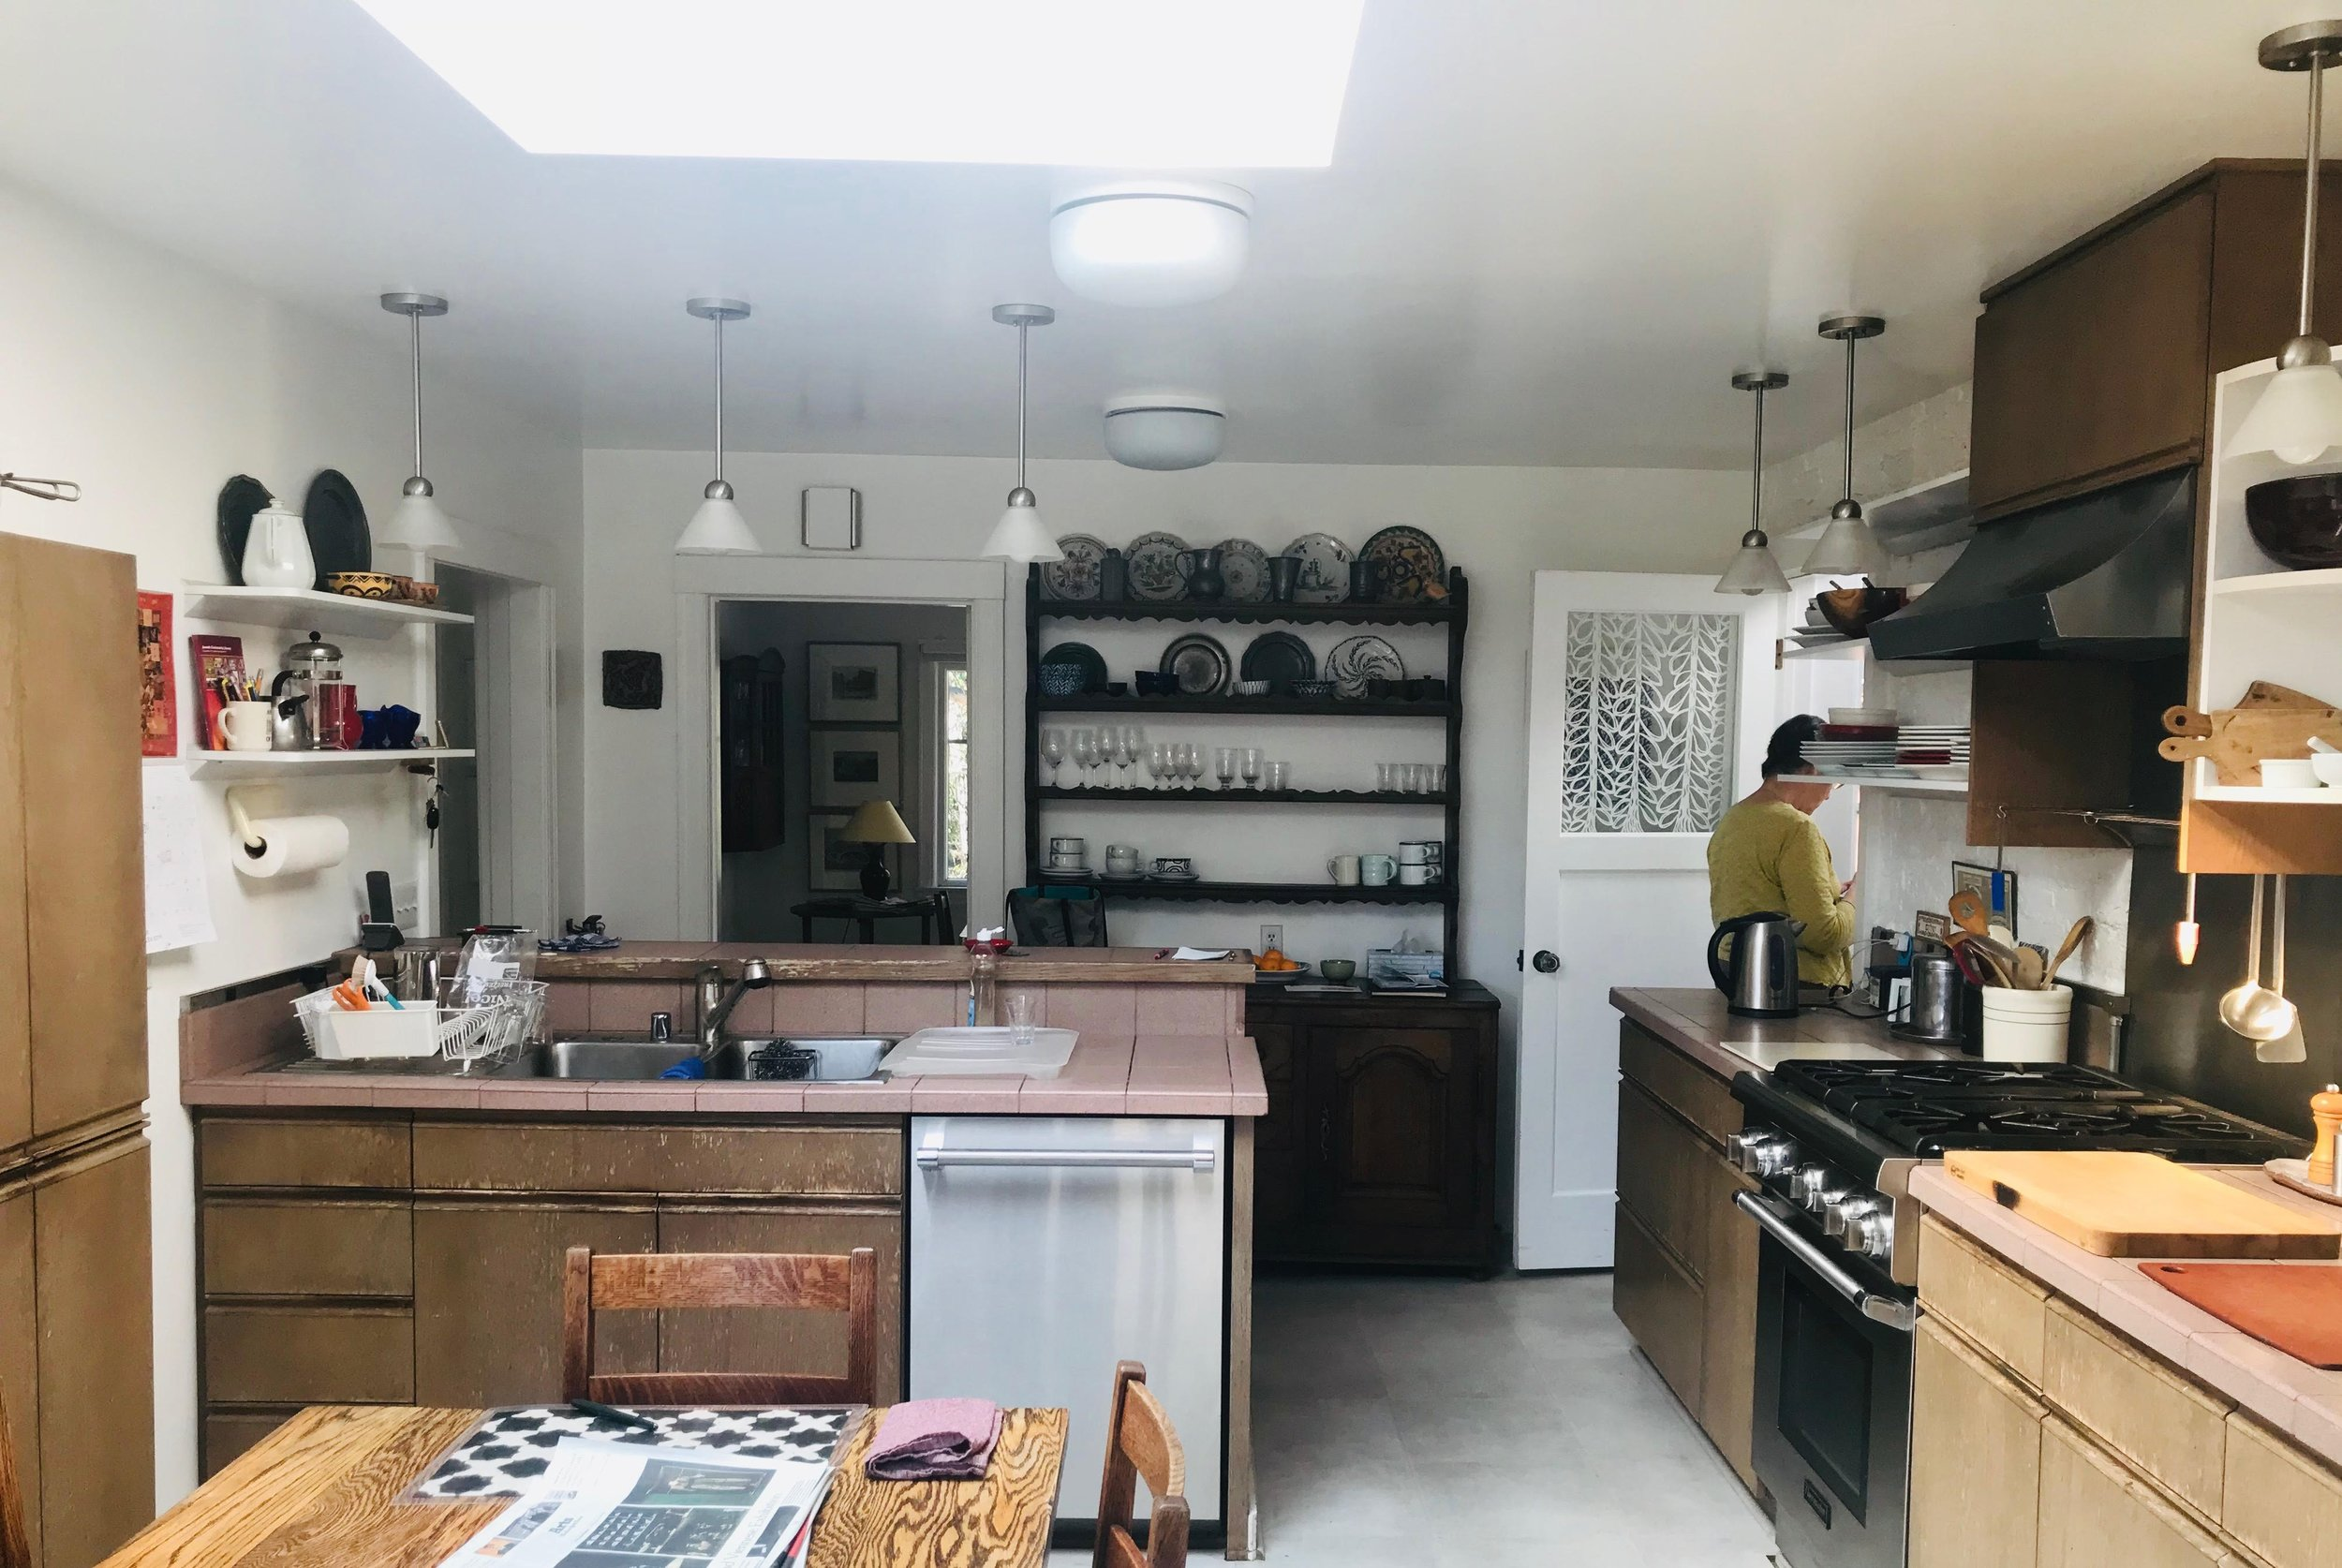 kitchen3.jpg